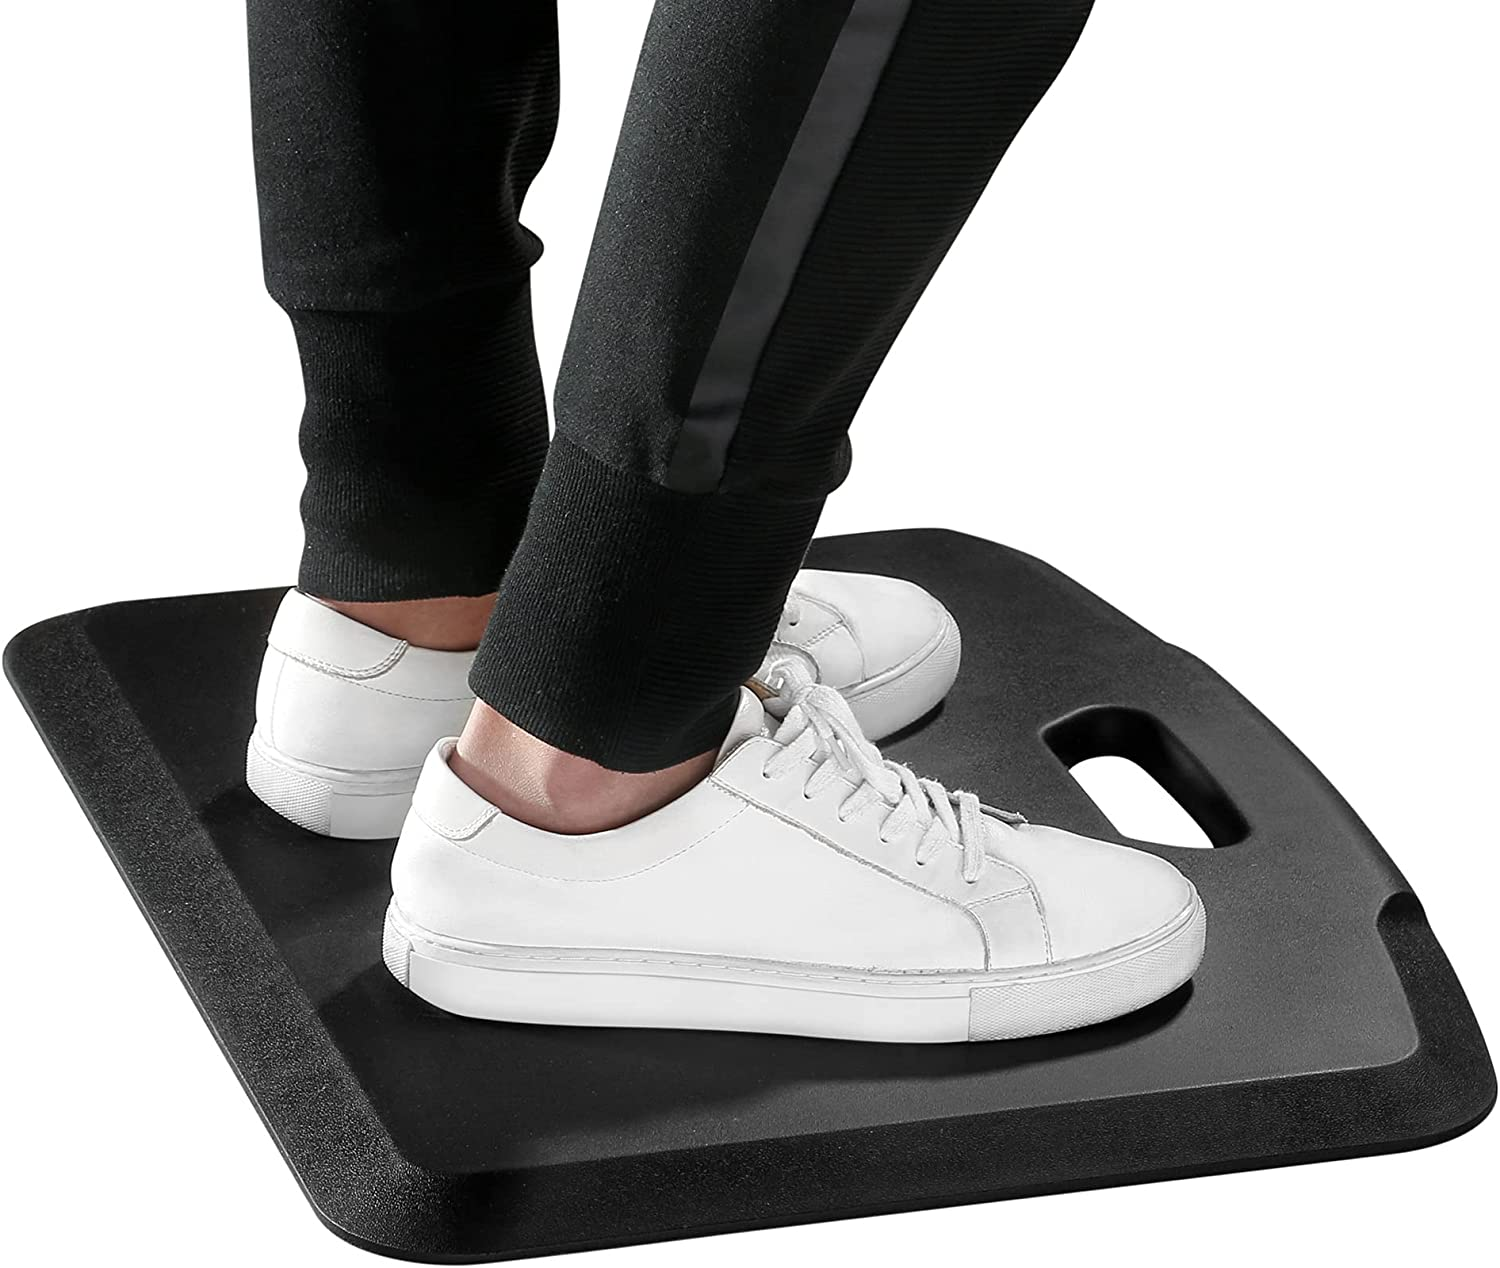 Stand Steady Small Anti Denver Seattle Mall Mall Fatigue with Standing Mat Handl Carrying